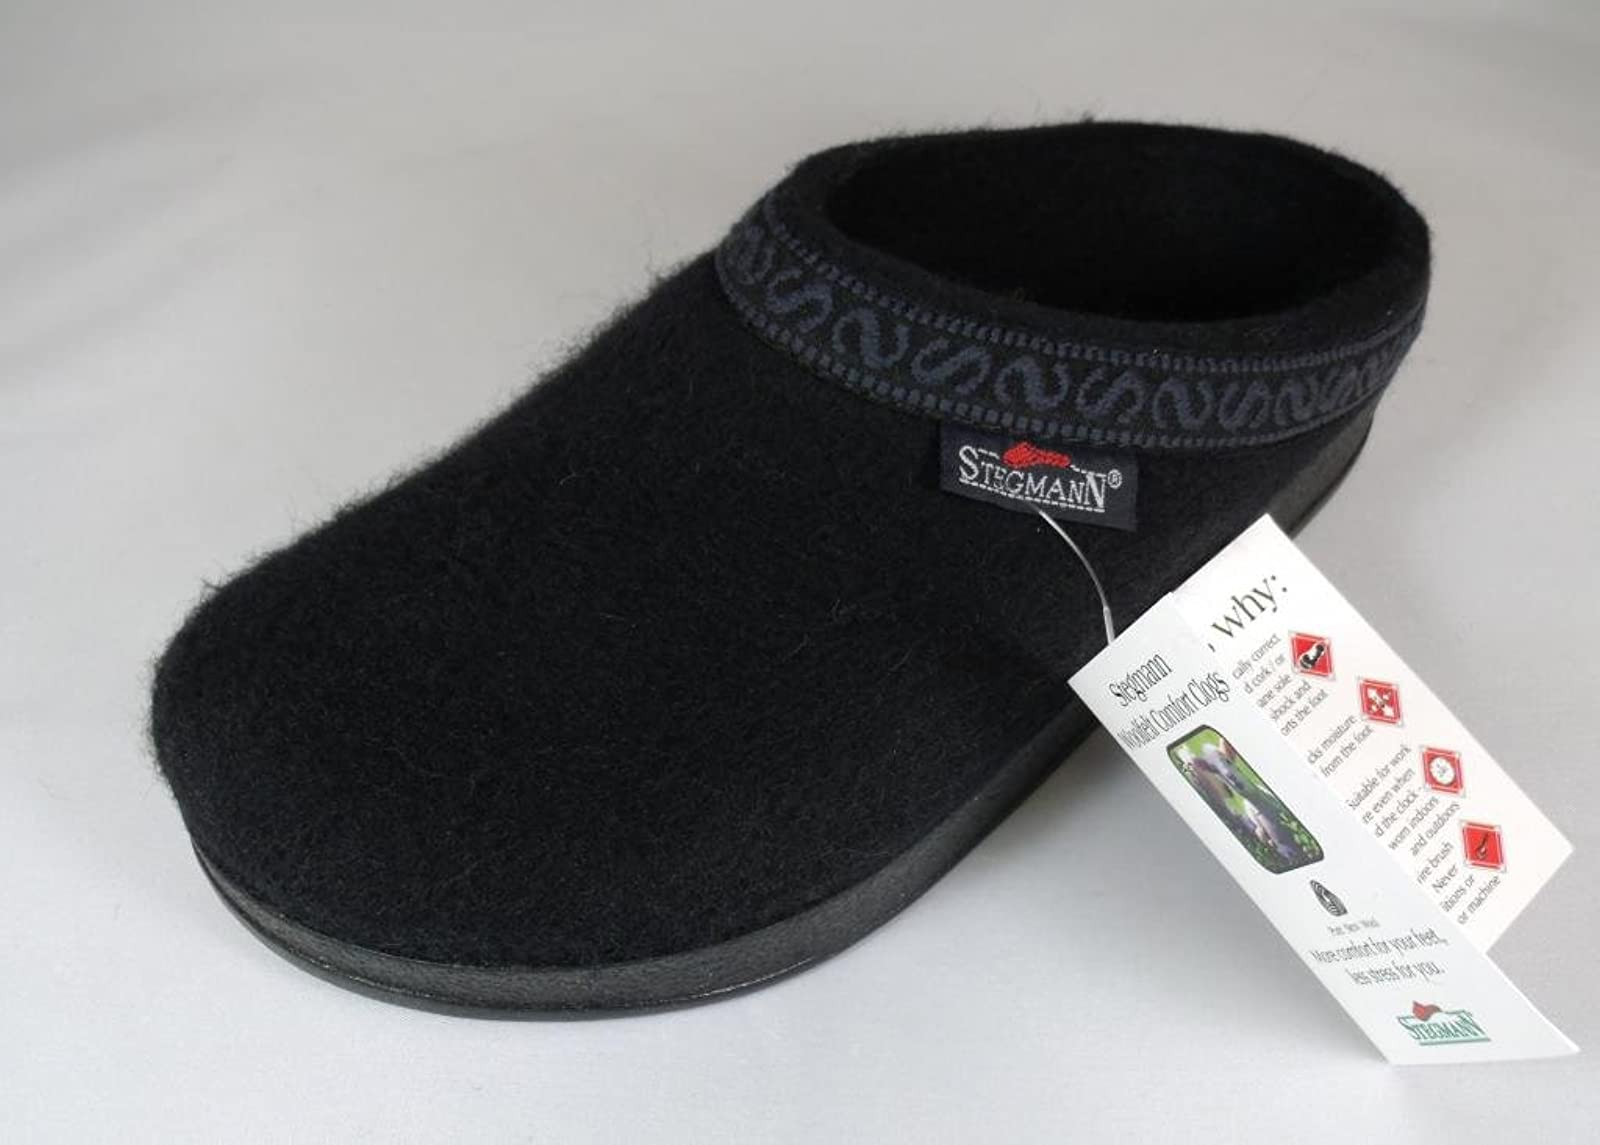 Women's Wool-Flex clog L108p Black Graphite - 2